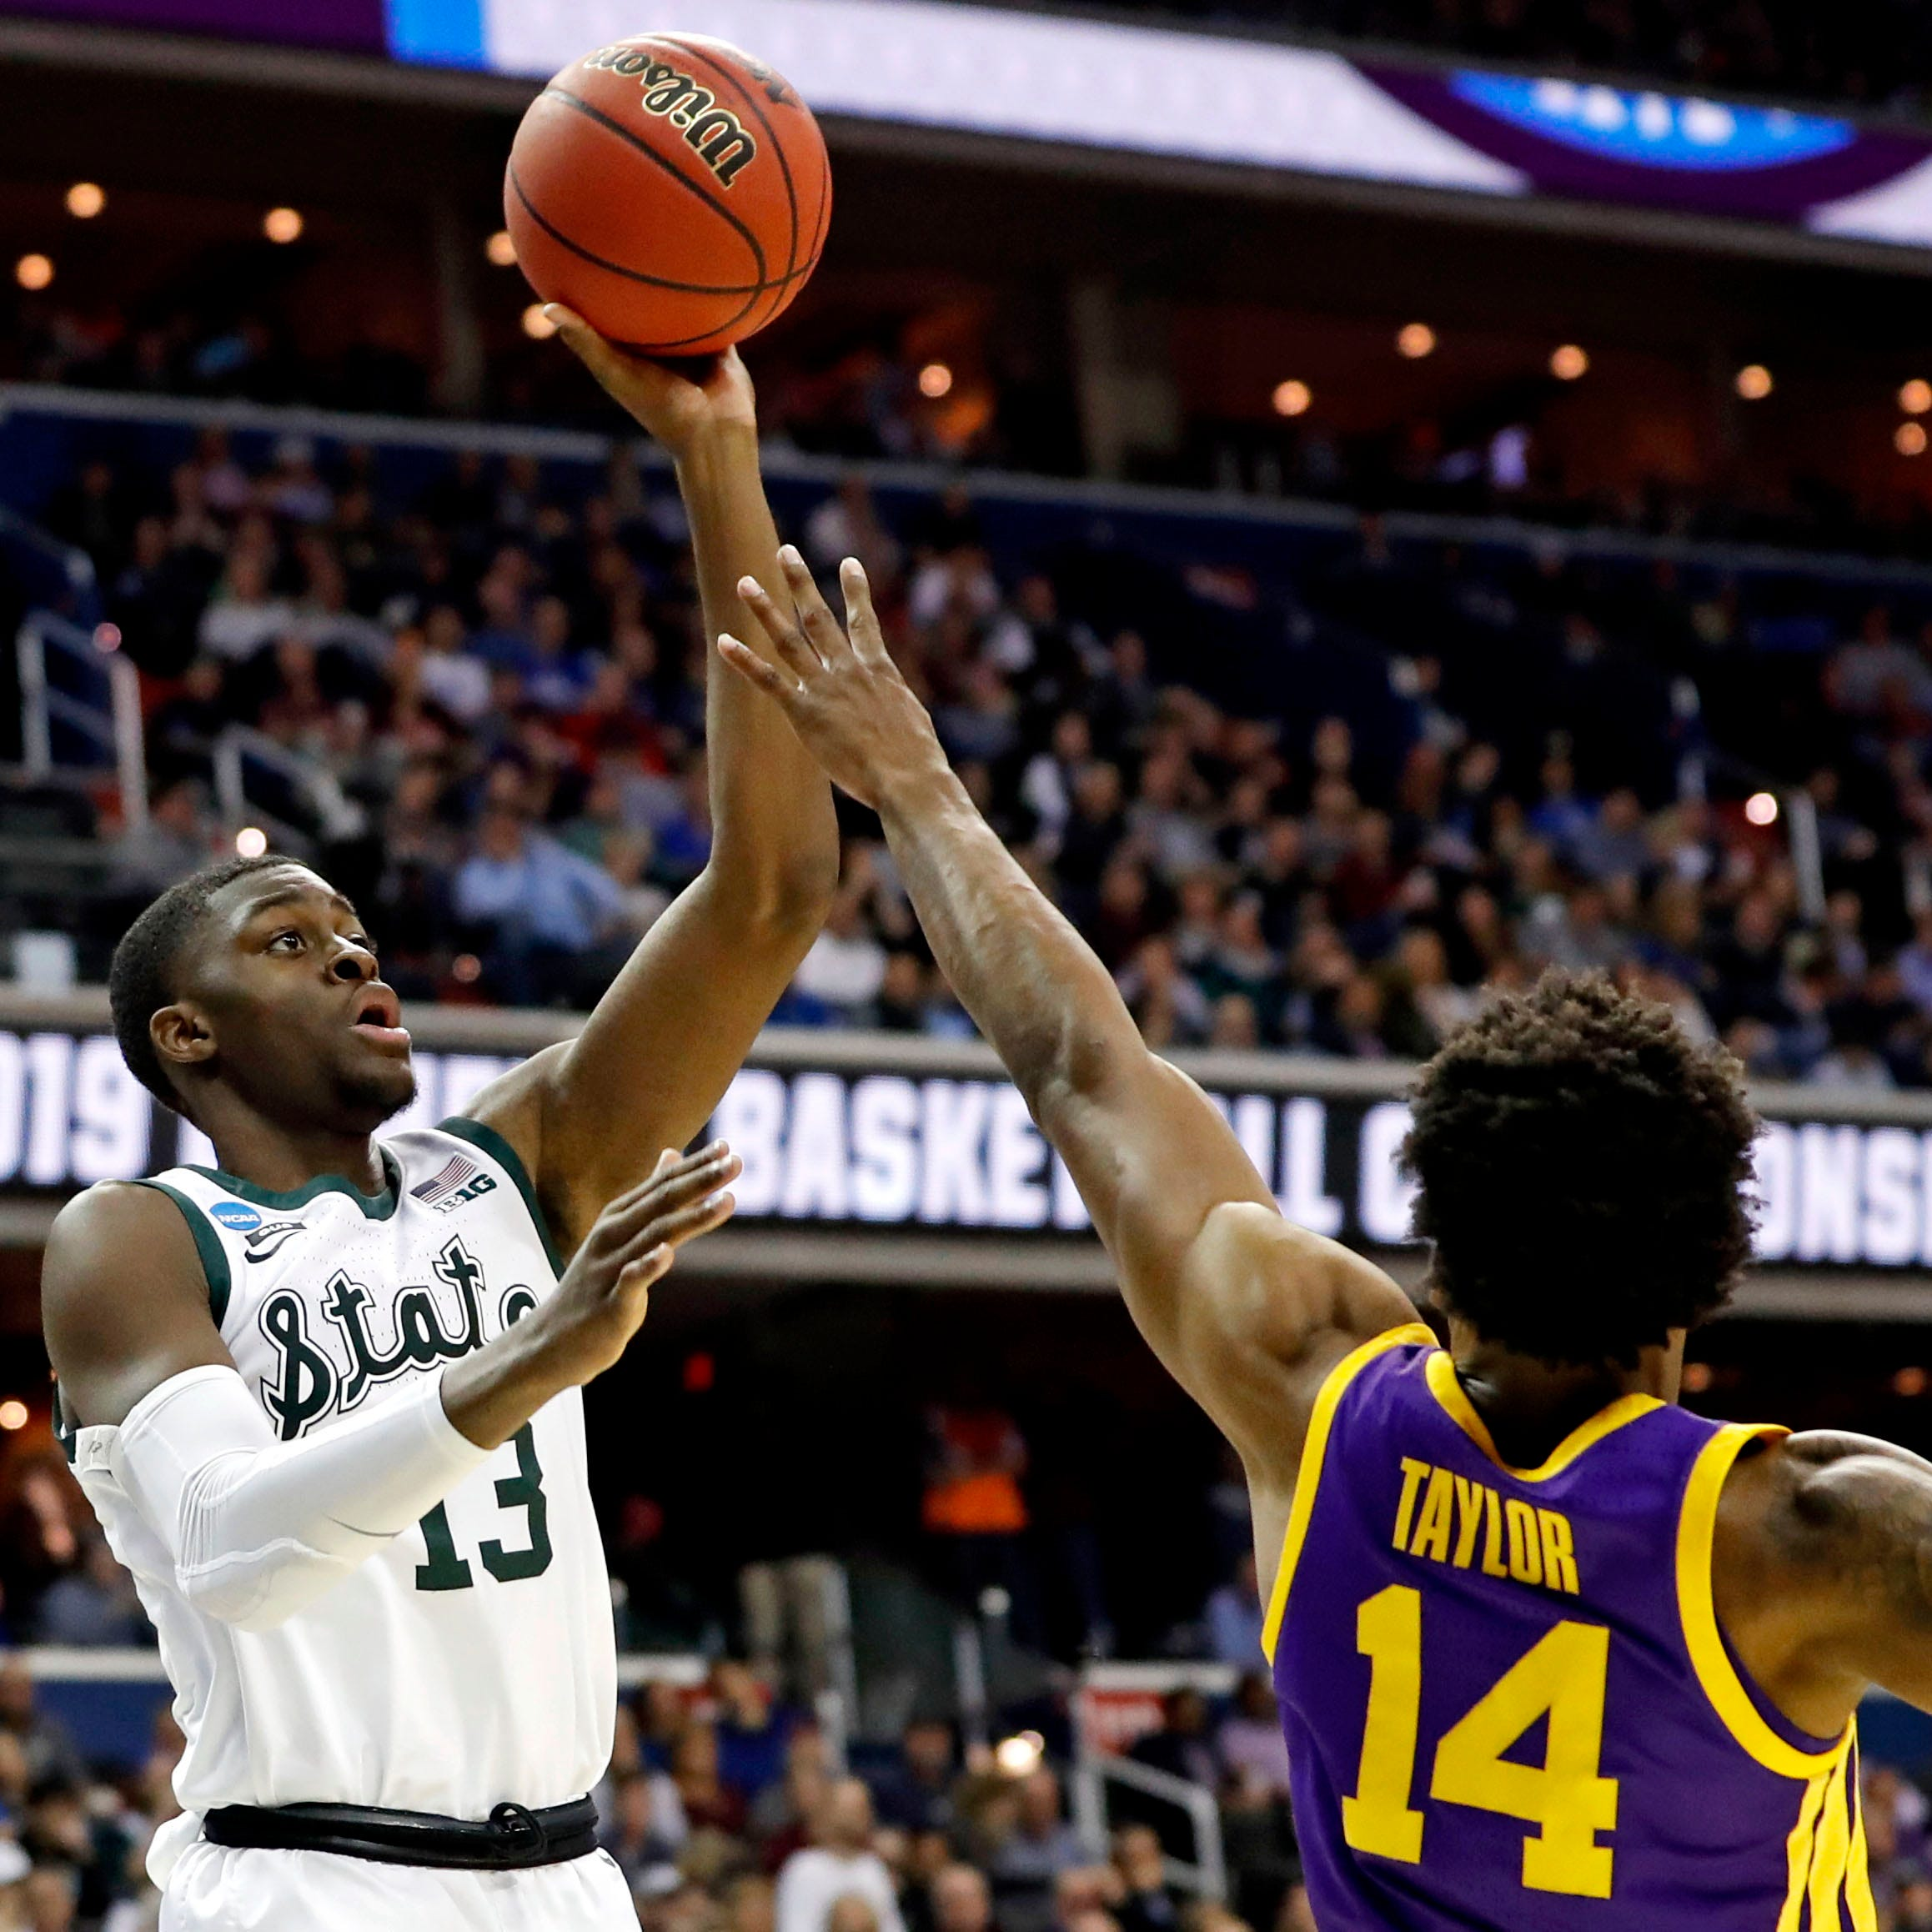 Michigan State basketball: Turning point, unsung hero from Sweet 16 win over LSU